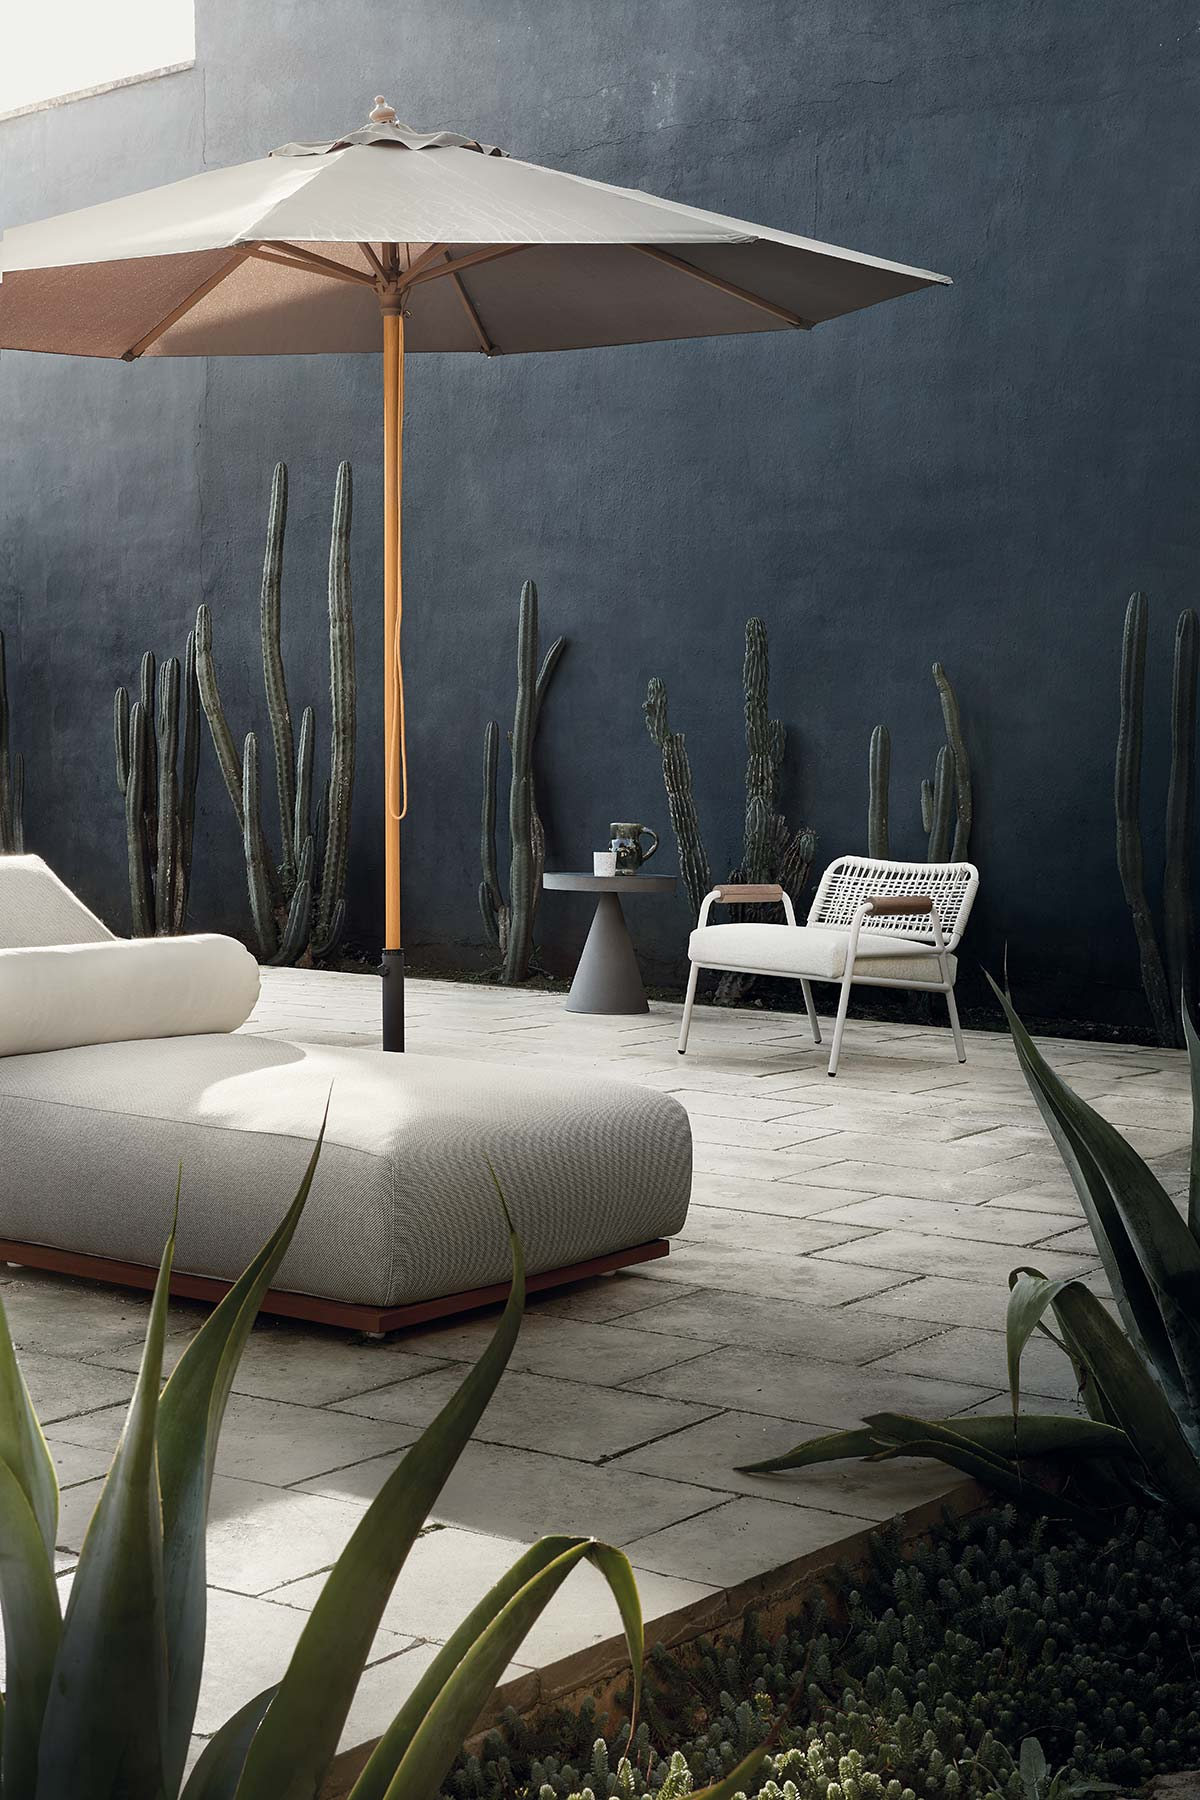 Open Air collection by Meridiani, Design Andrea Parisio